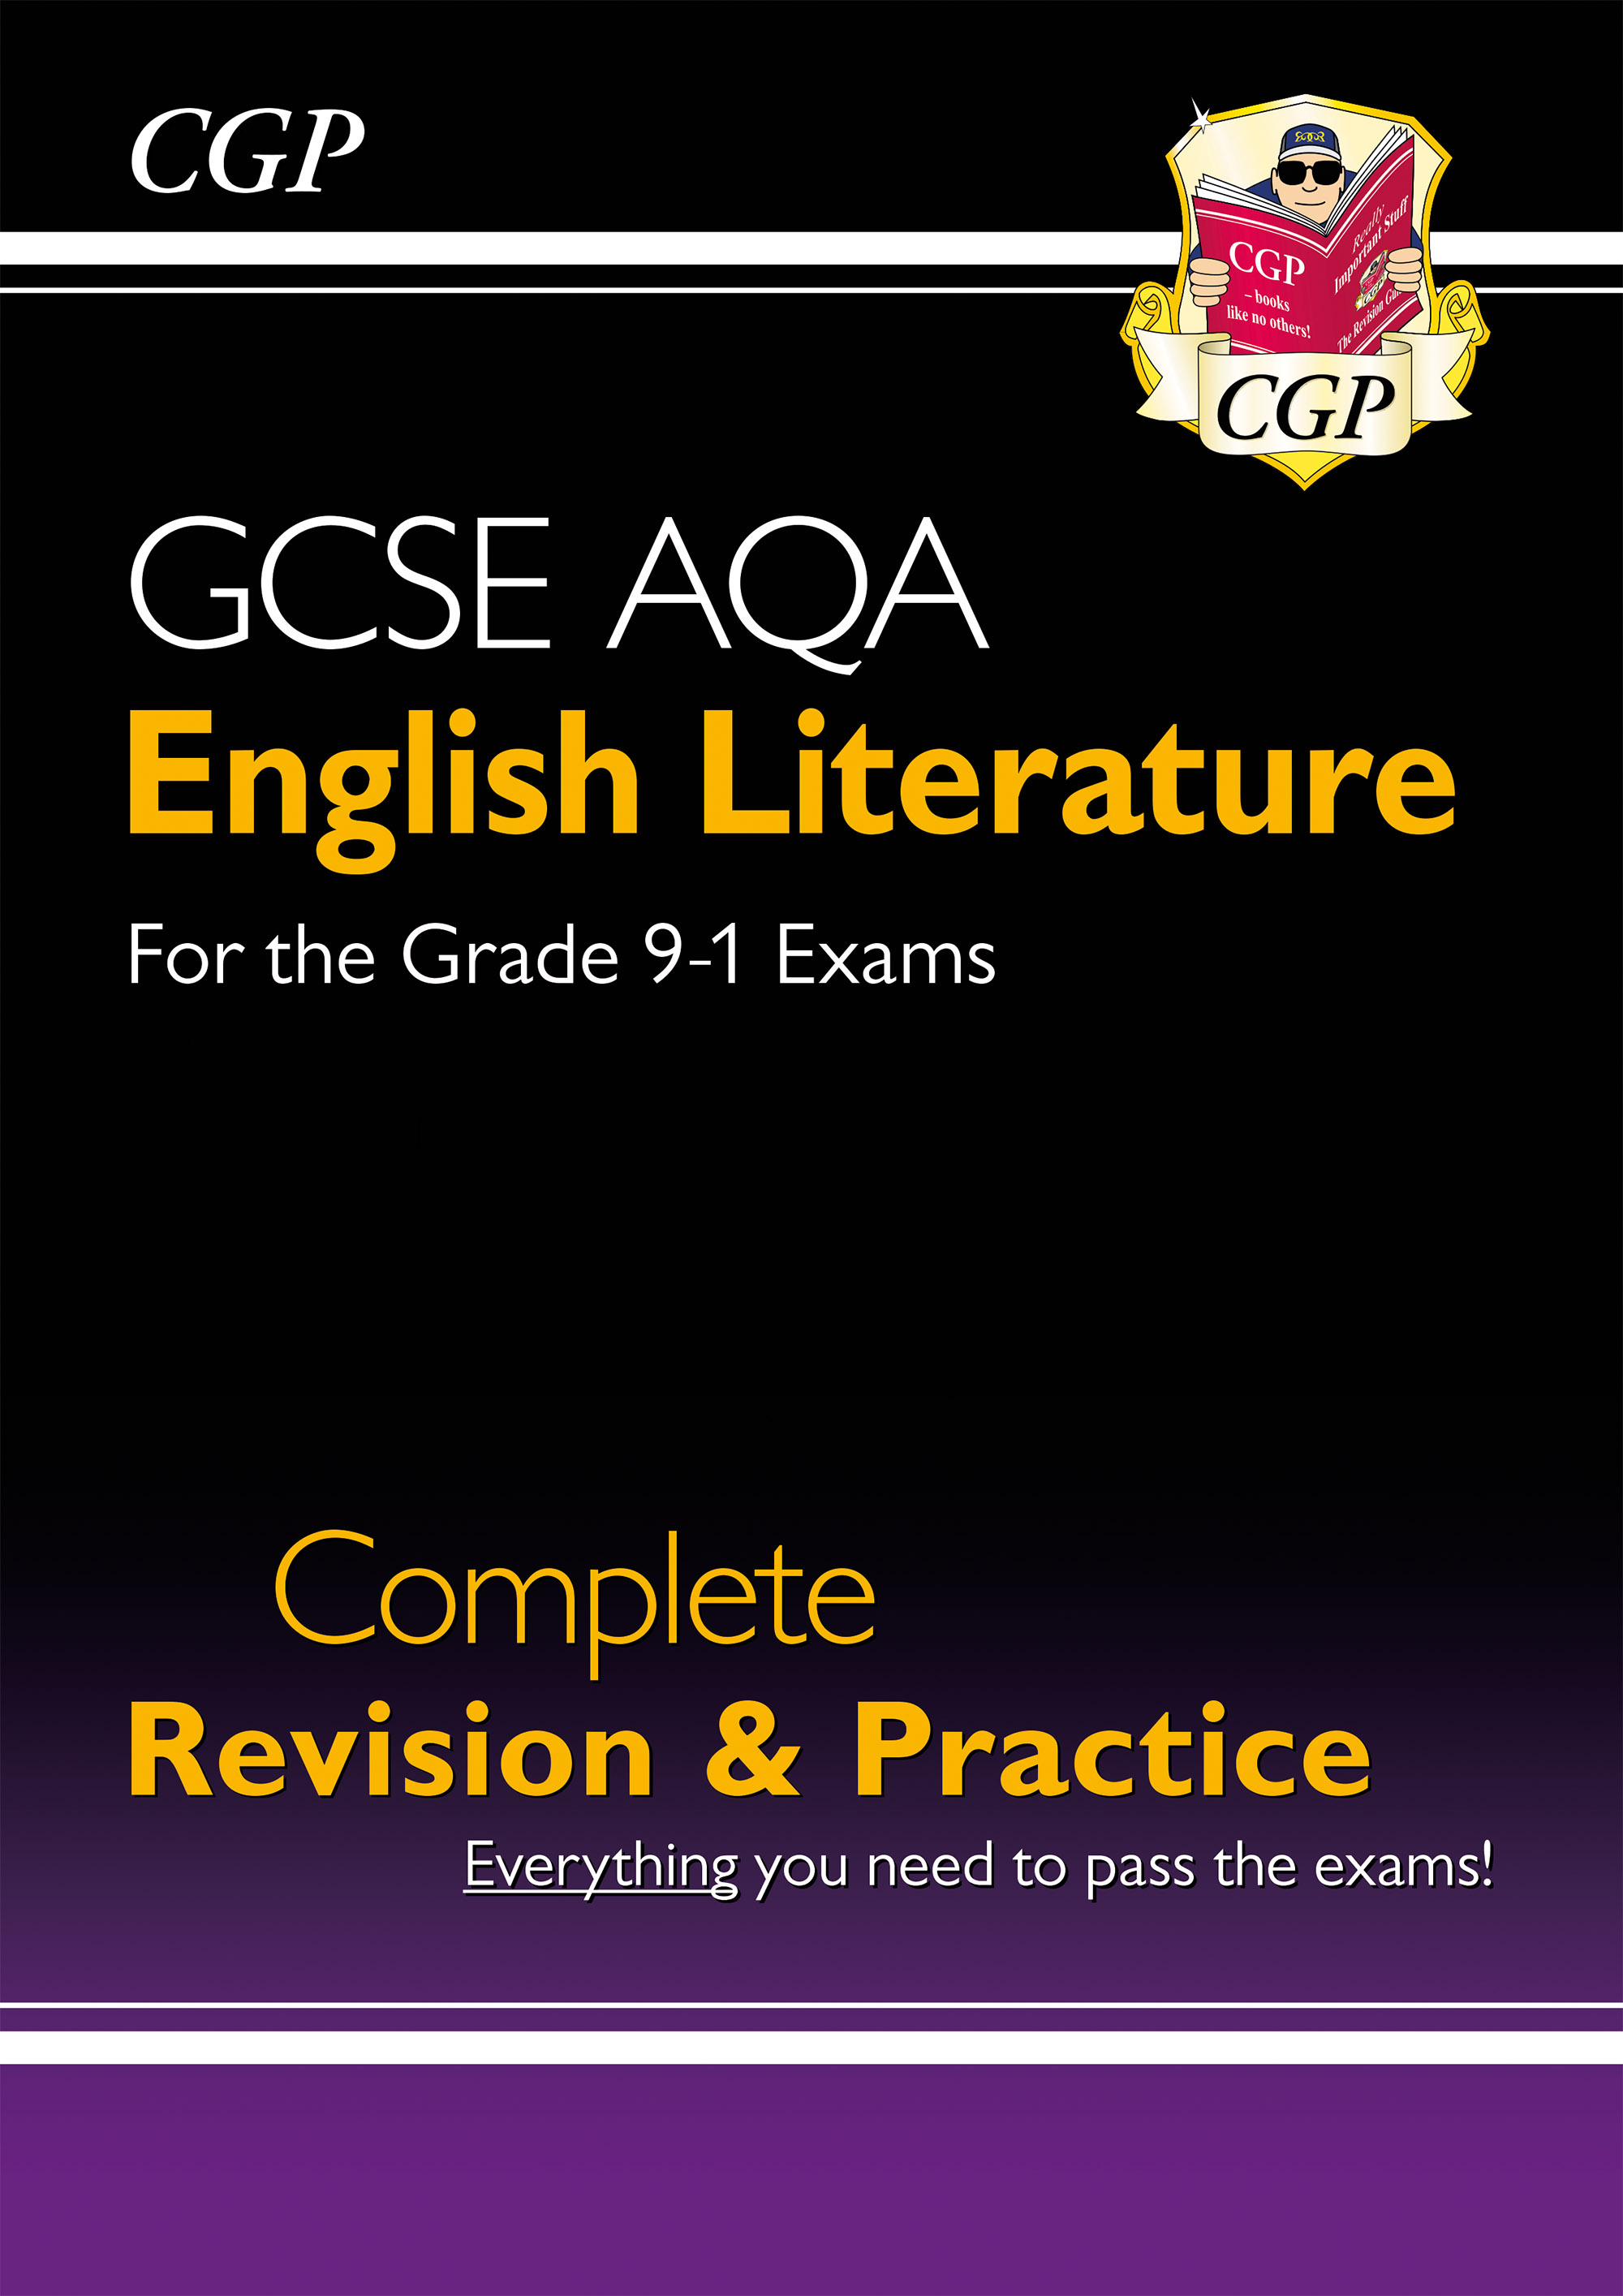 ELAS41D - New GCSE English Literature AQA Complete Revision & Practice - Grade 9-1 - Online Edition